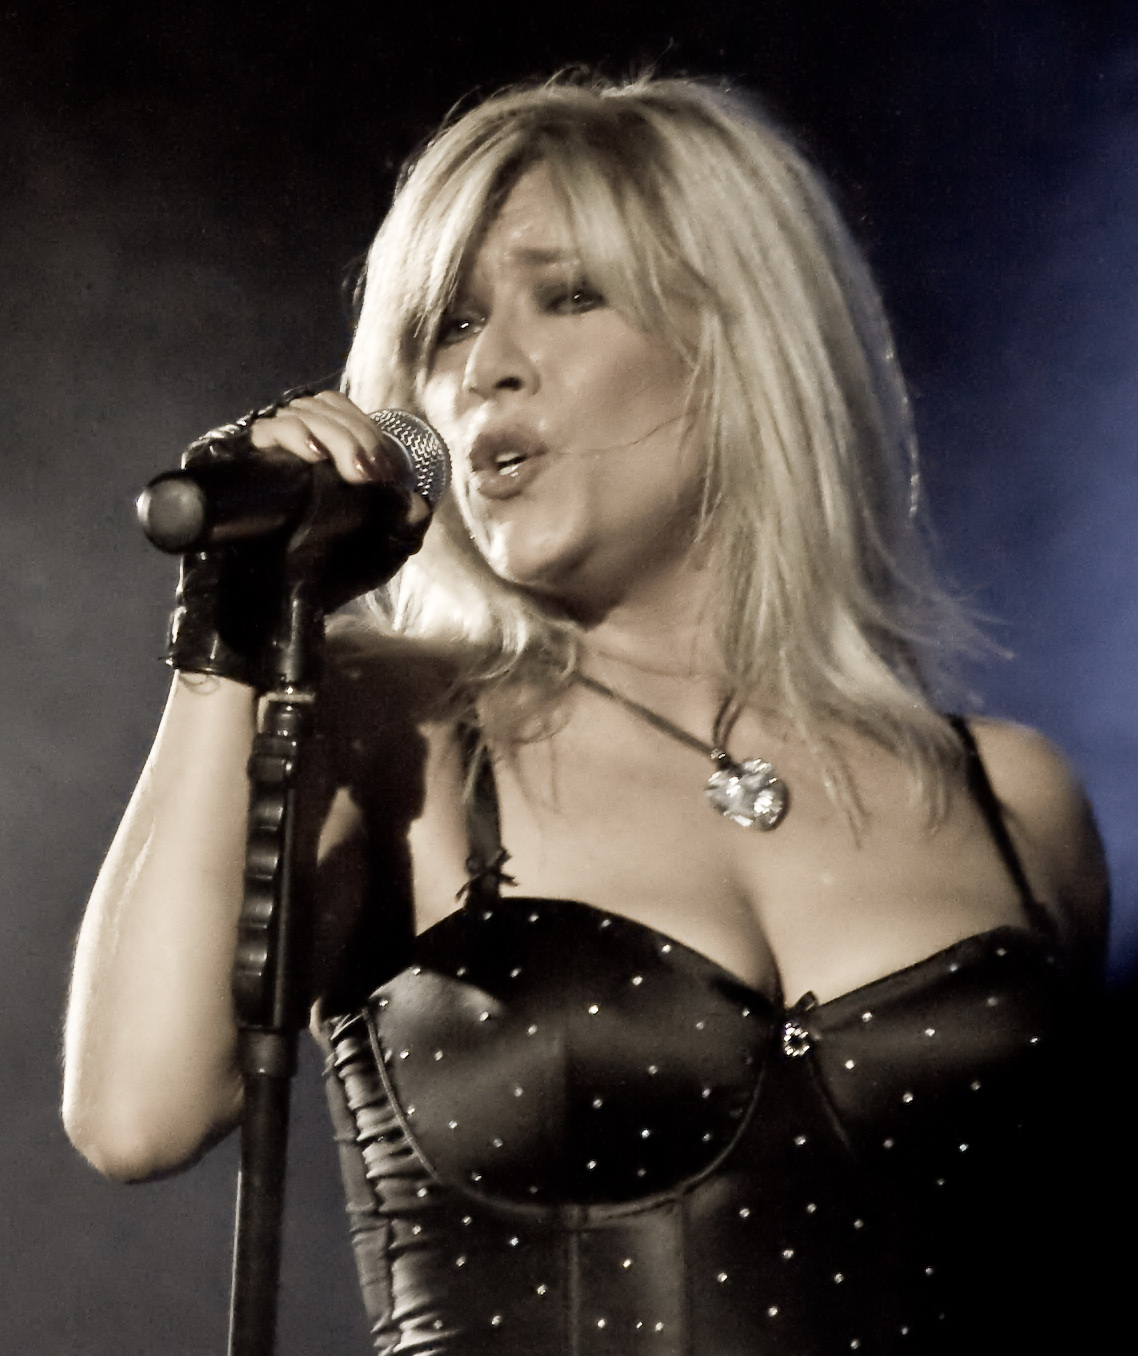 Samantha Fox nude (87 photo) Gallery, 2015, braless